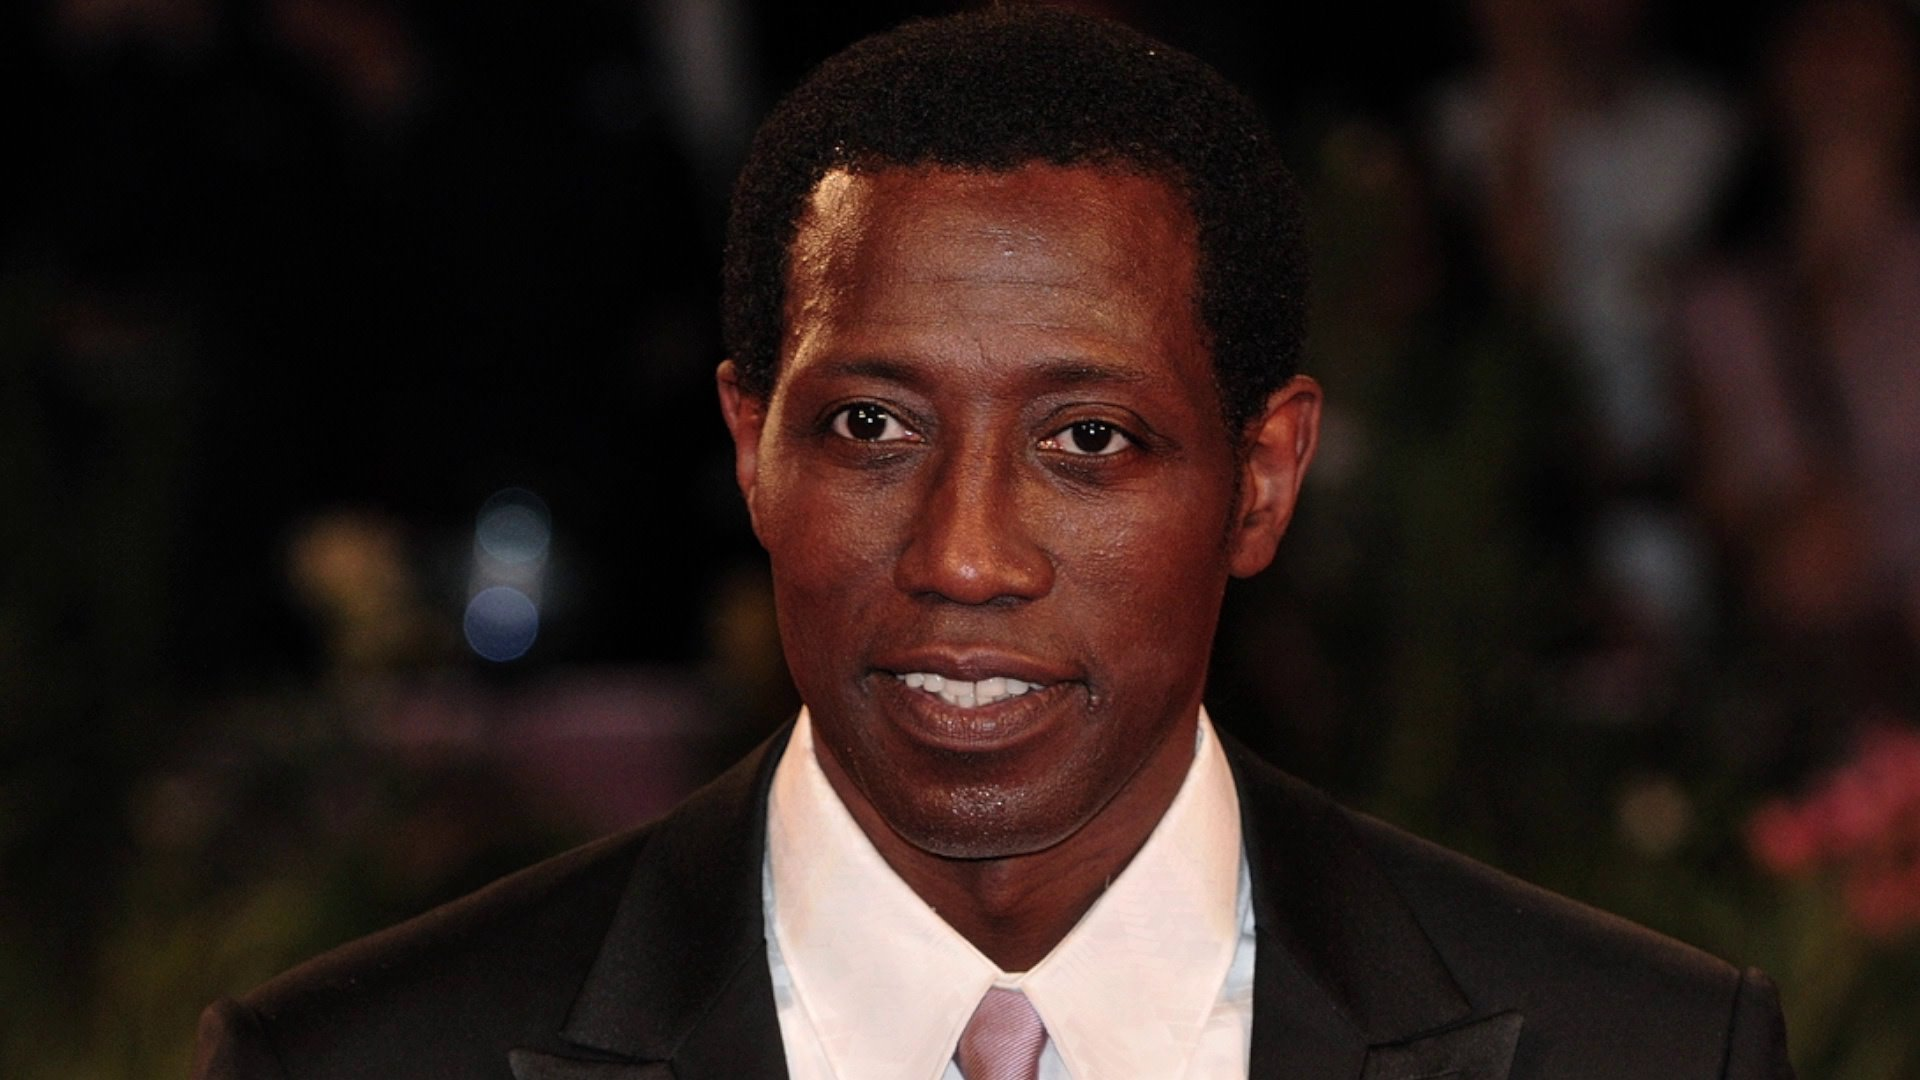 What's Wesley Snipes Up To Now That He's Out Of Jail?